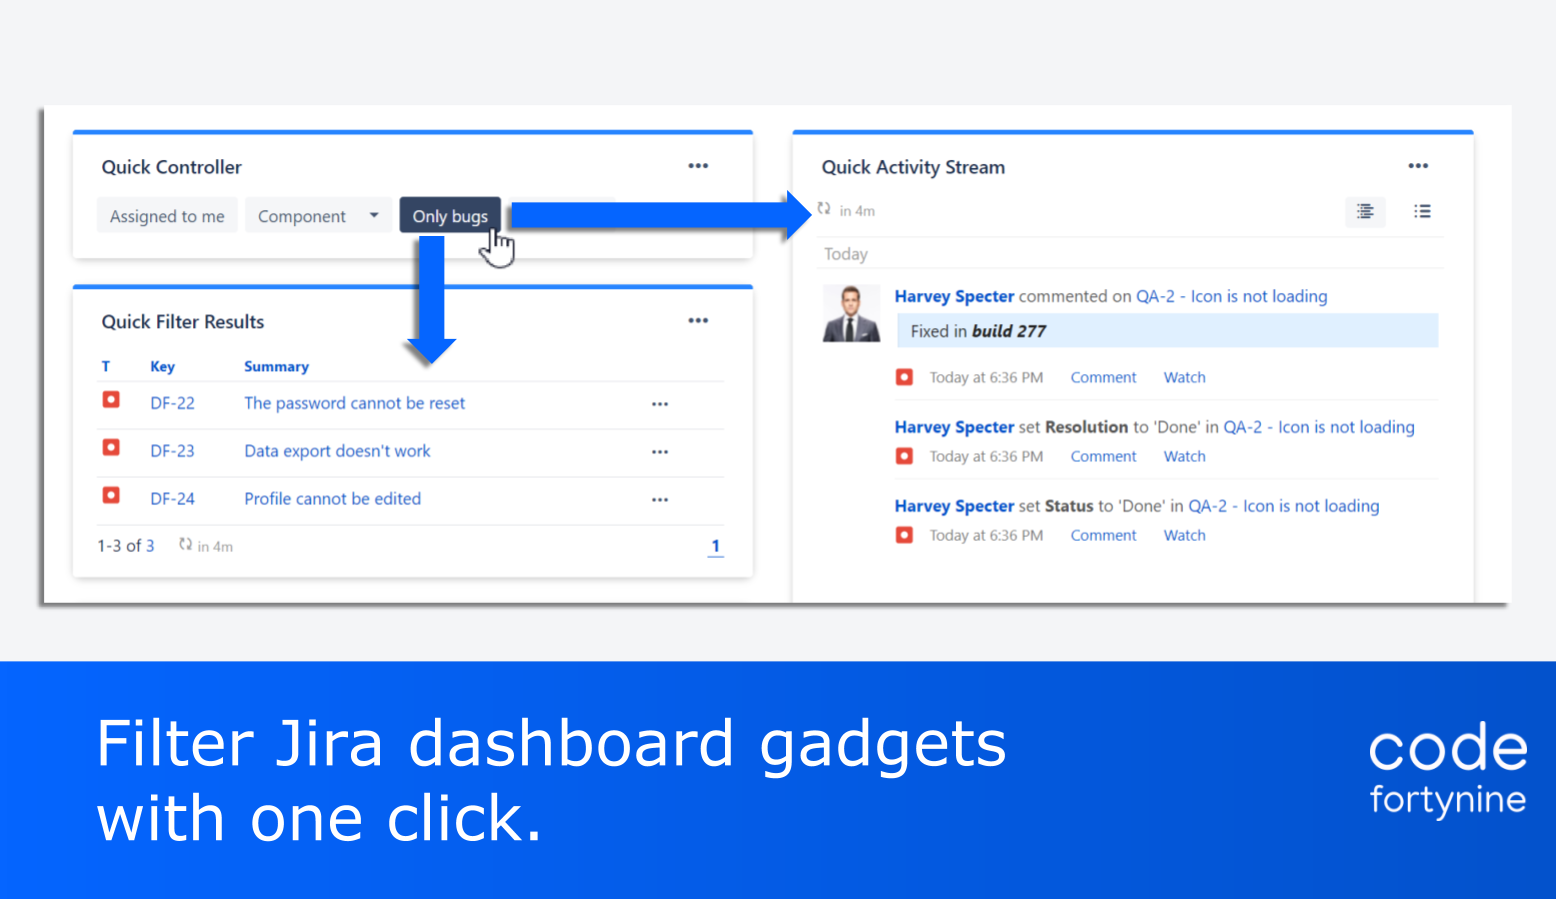 Highlight 1 Quick Filters for Jira Dashboards